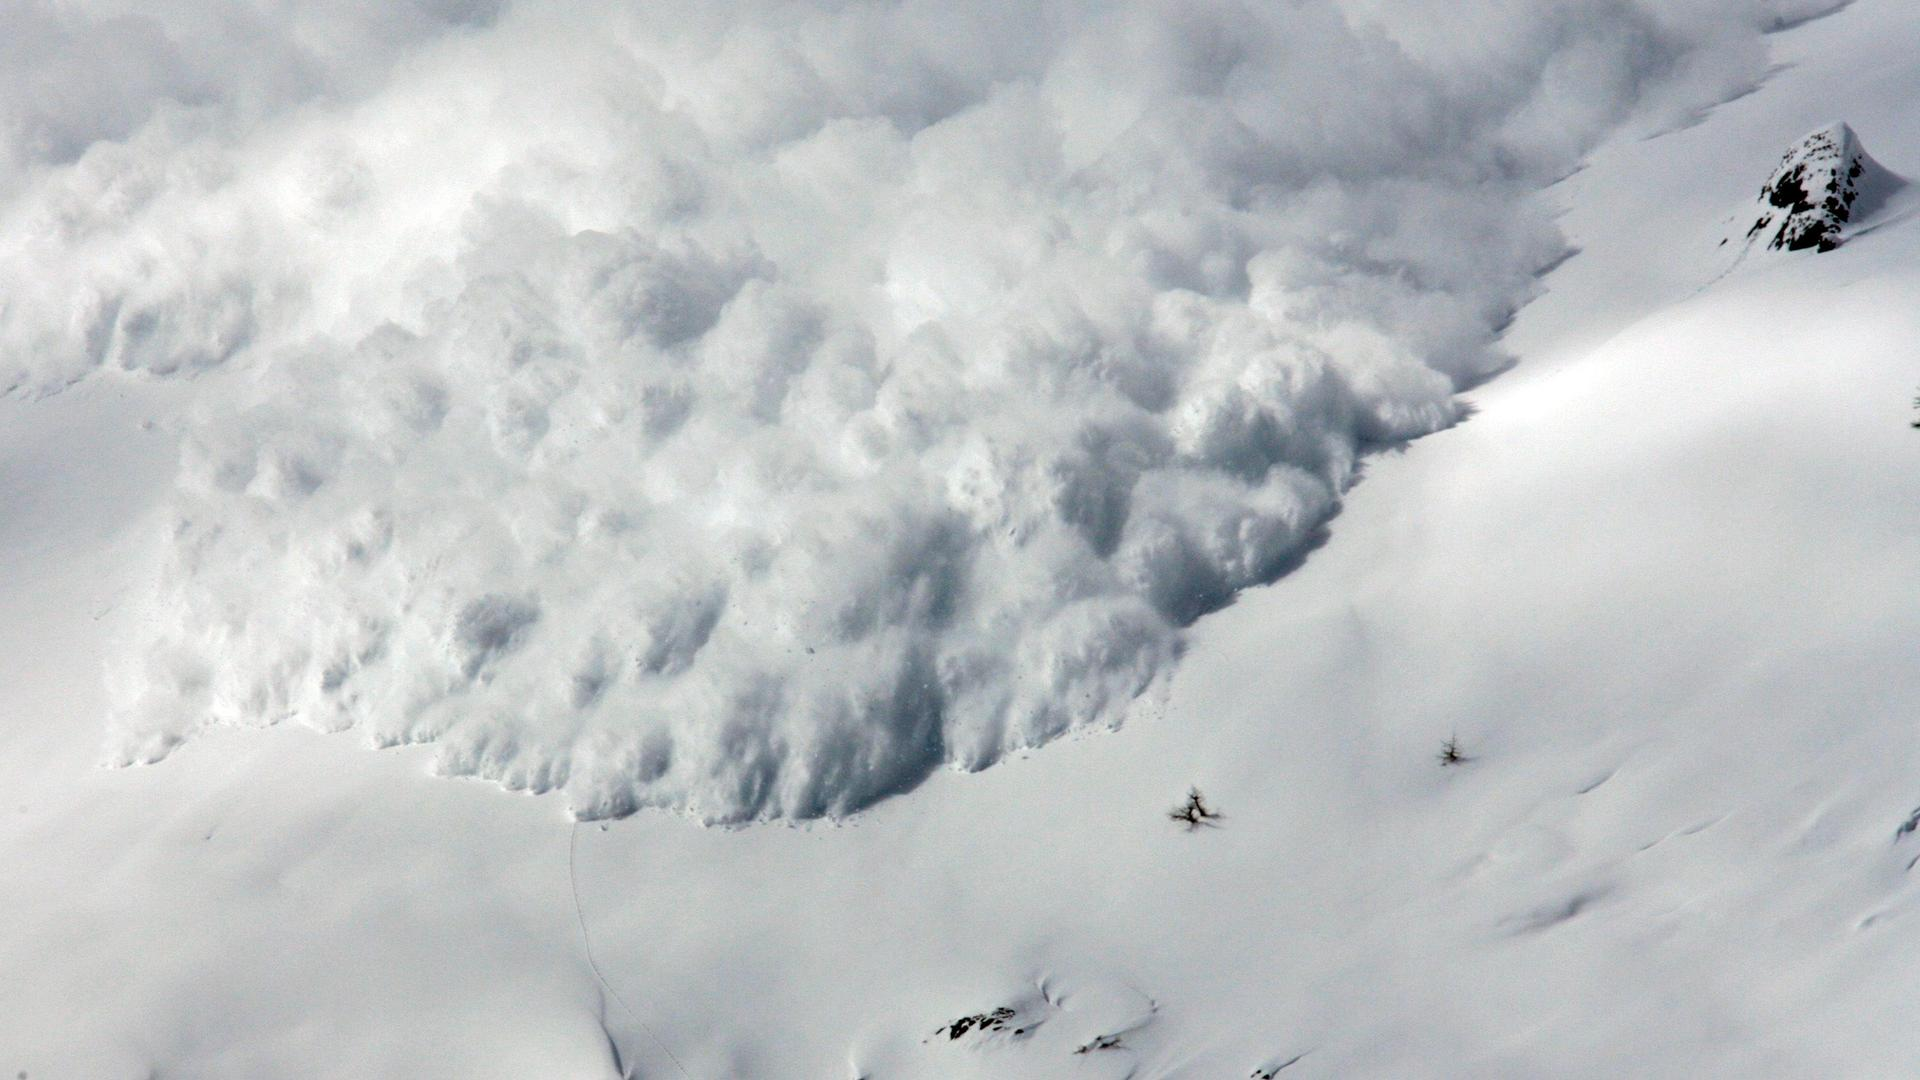 European Avalanche Warning Services